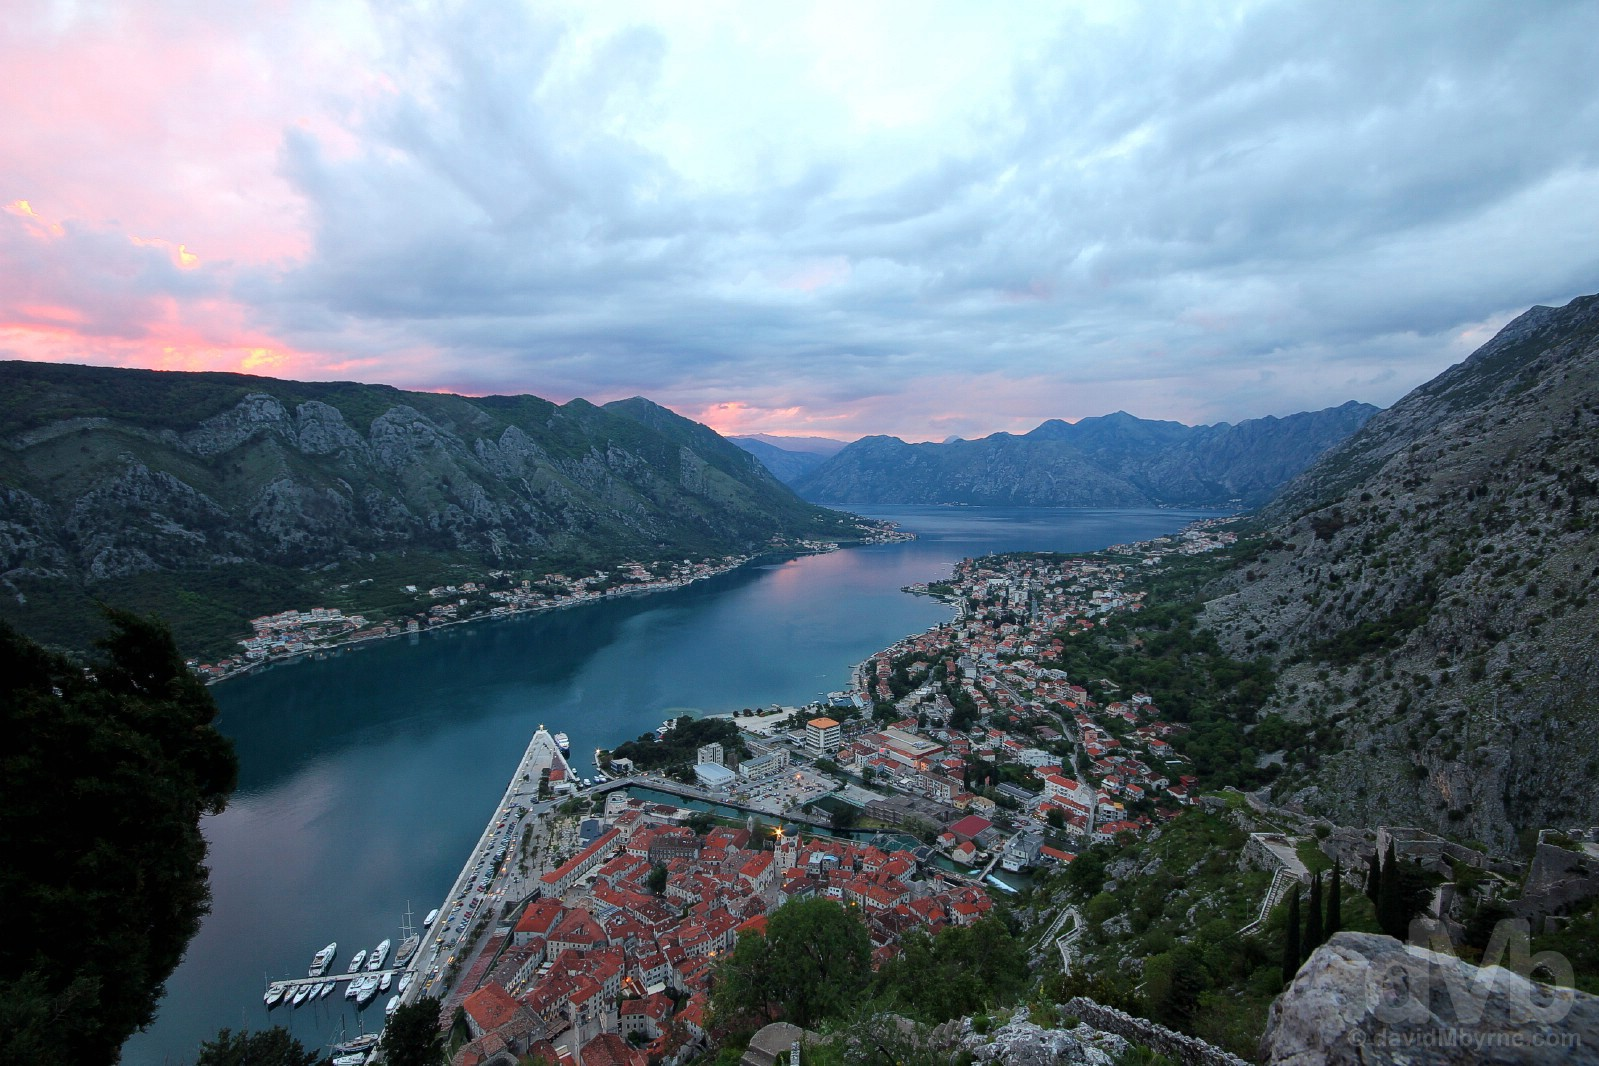 Sunset on an overcast day as seen from Castle St, John, the highest point of the fortifications overlooking Kotor & Kotor Bay, Montenegro. April 19, 2017.